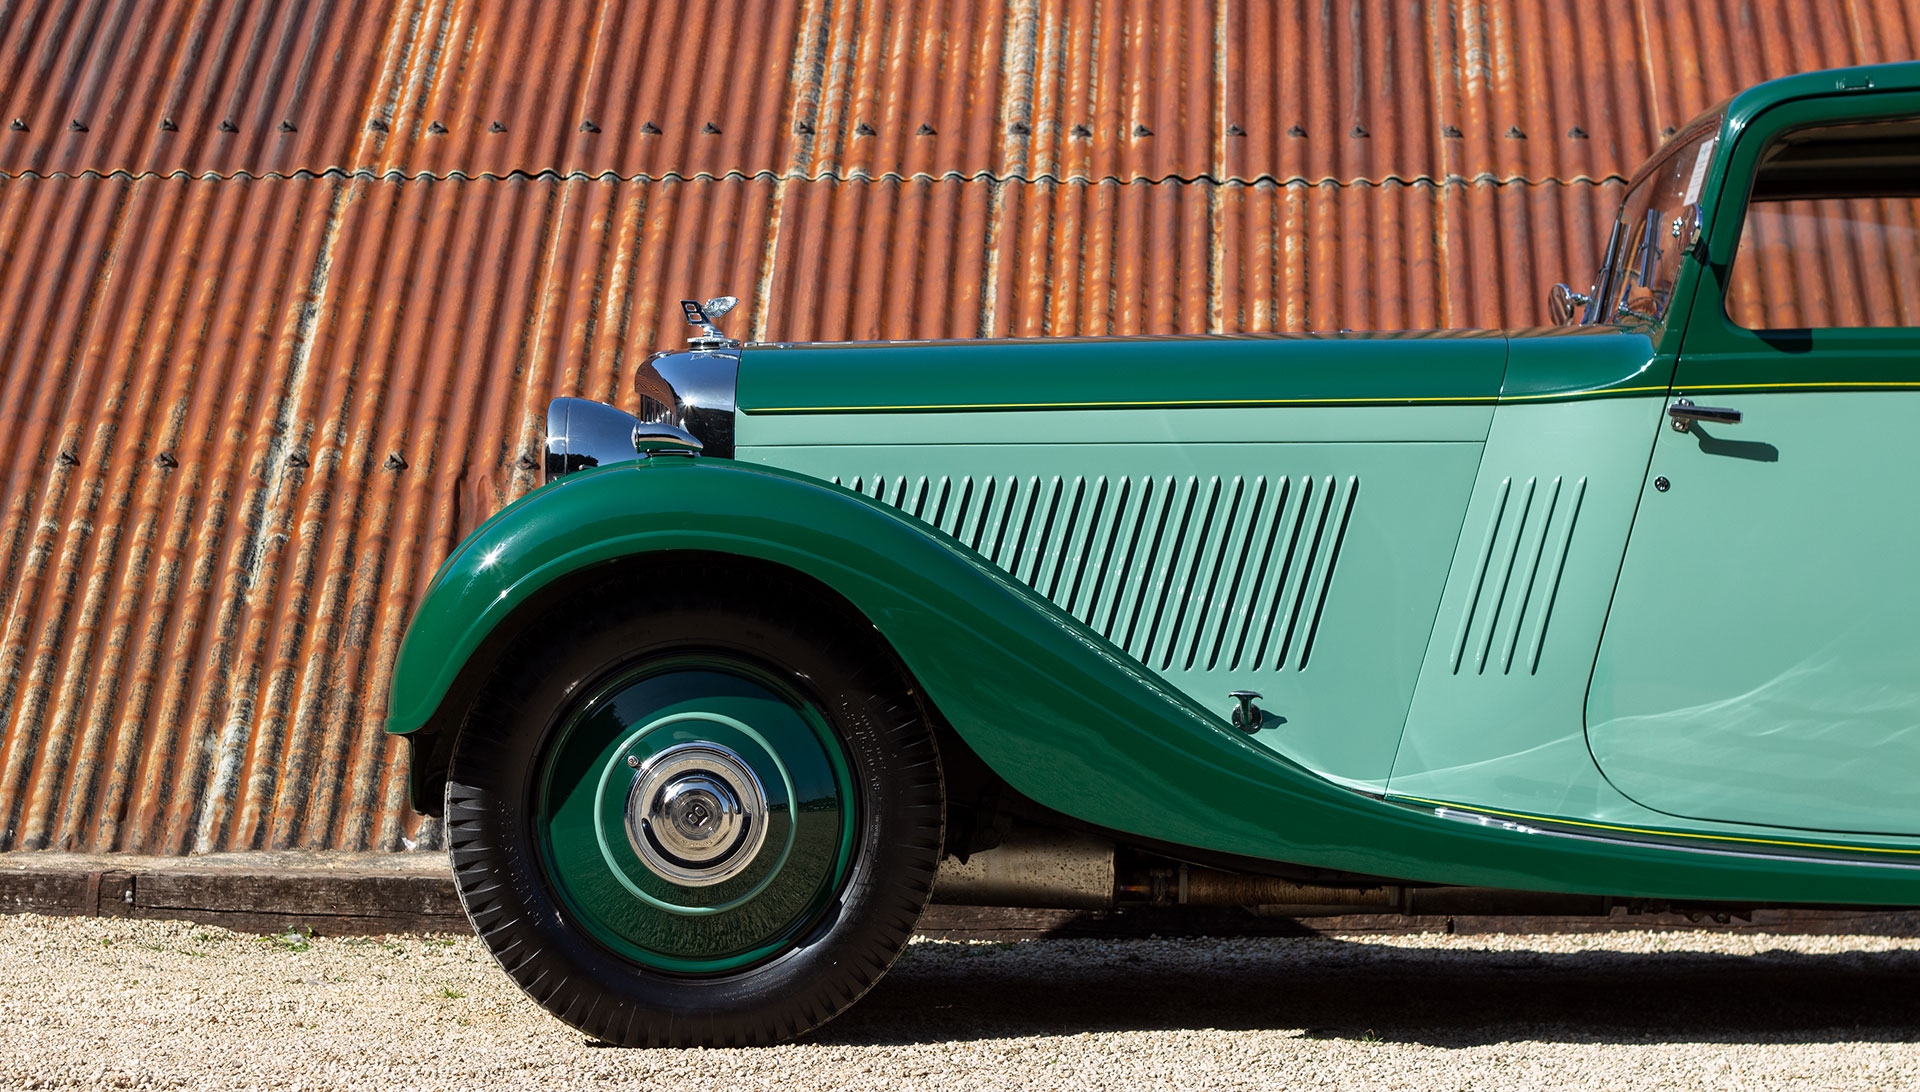 1934 Bentley 3½ Litre Pillarless Coupé by Gurney Nutting for sale at The Classic Motor Hub